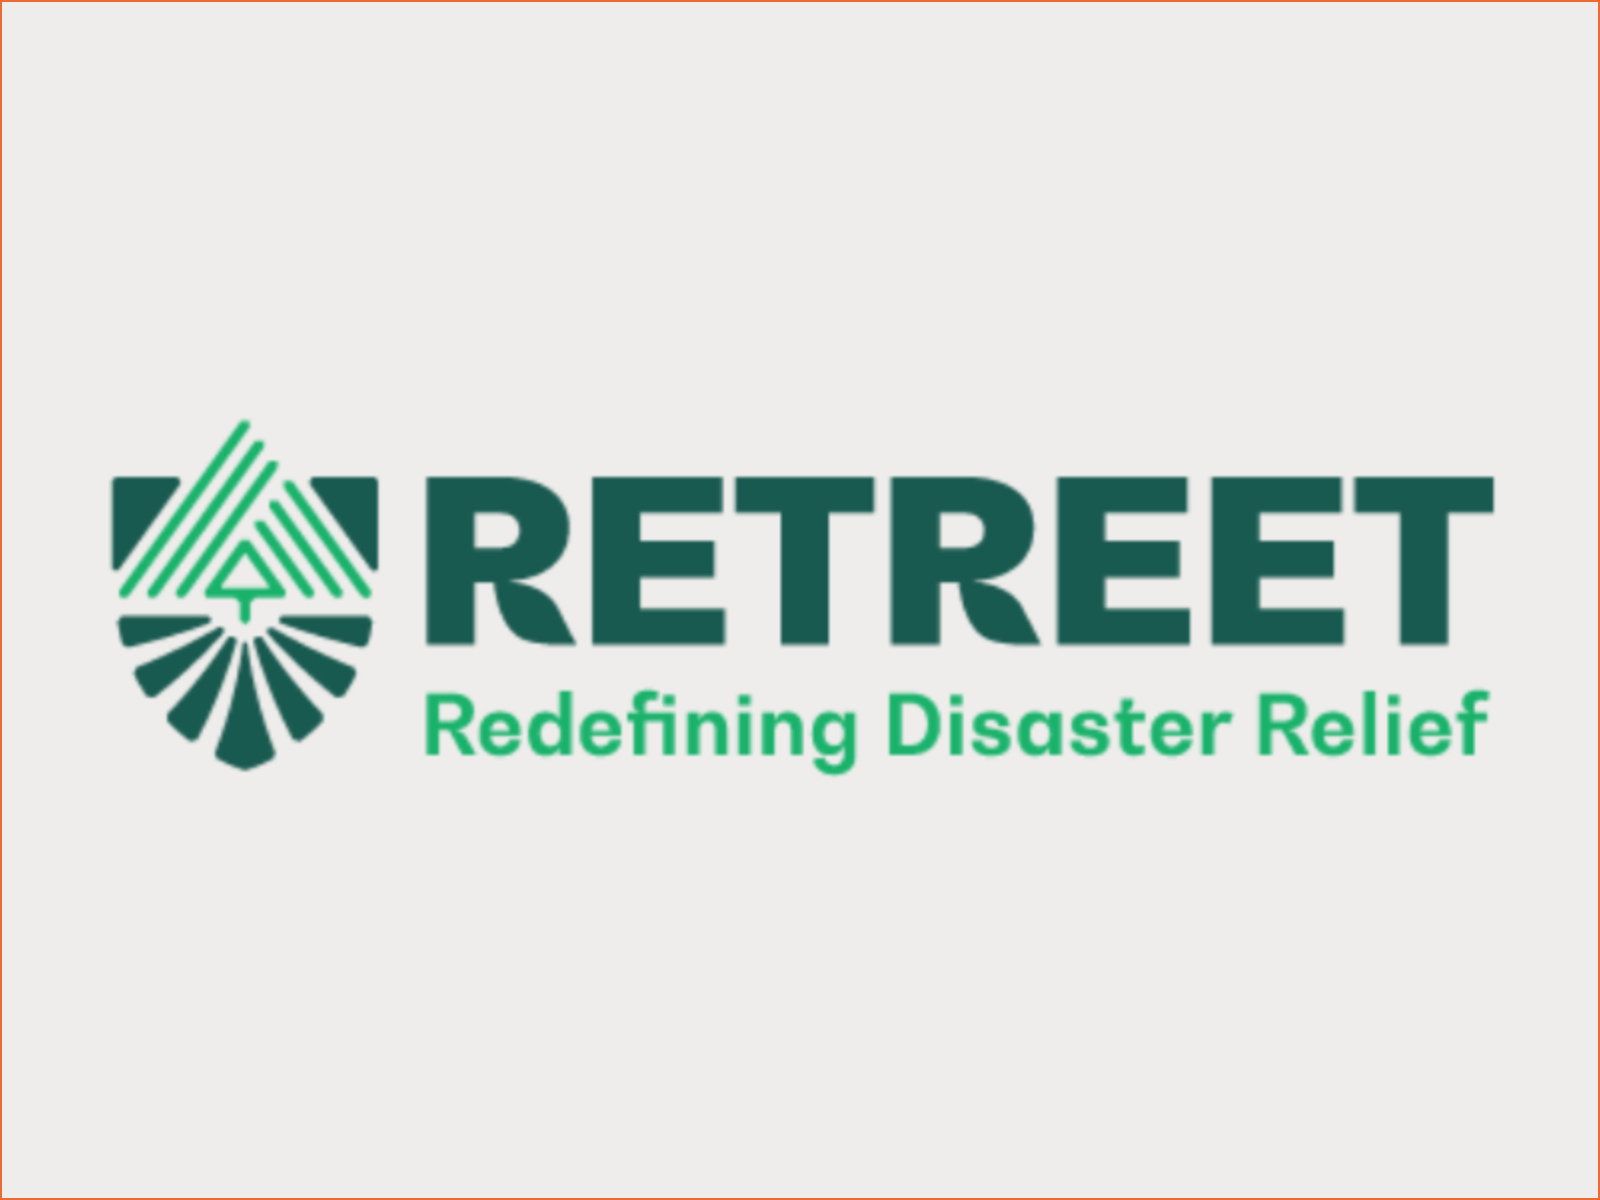 RETREET: Redefining Disaster Relief